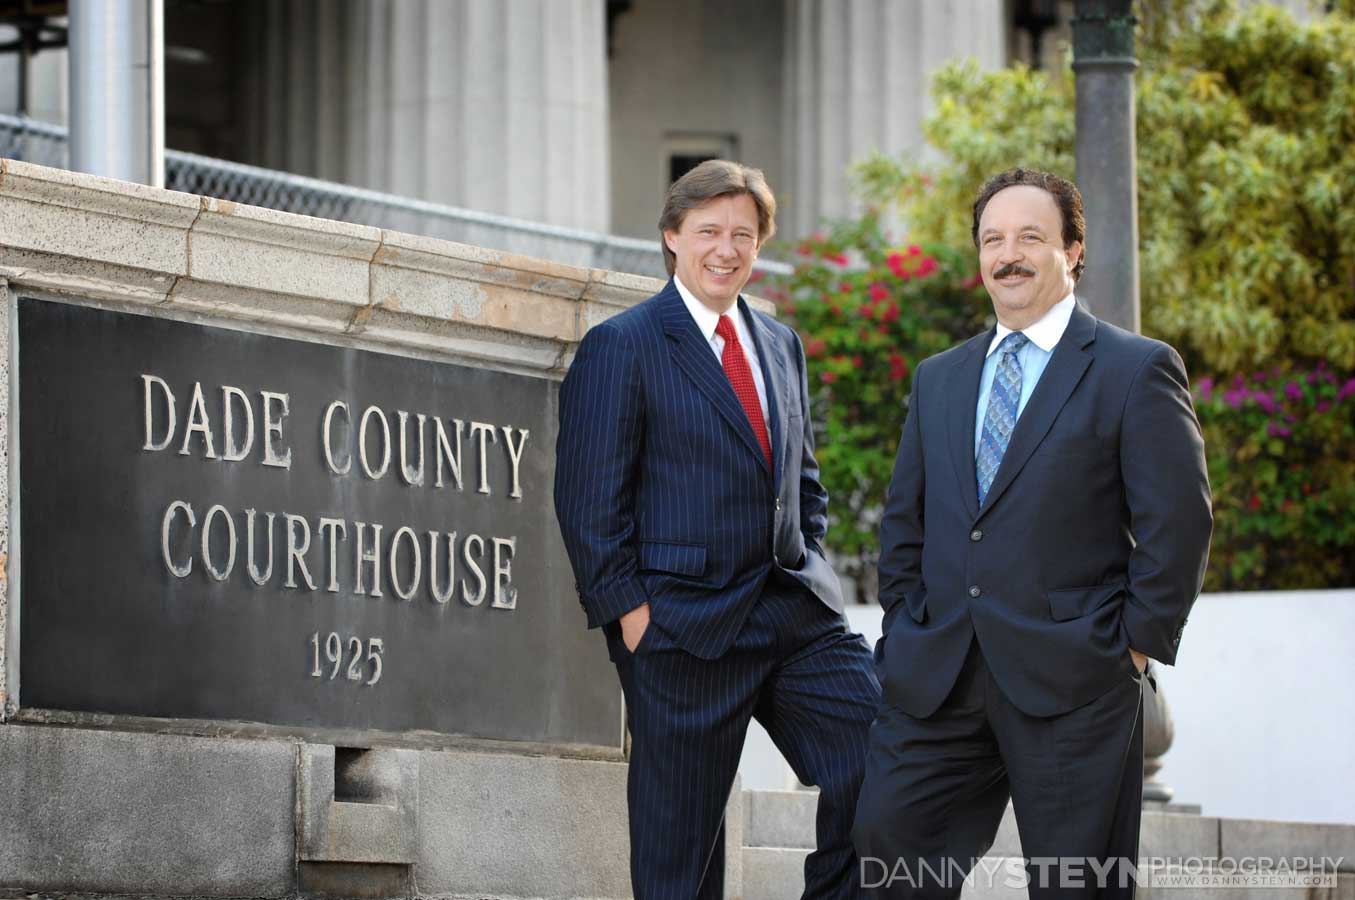 Attorney portraits photography fort lauderdale